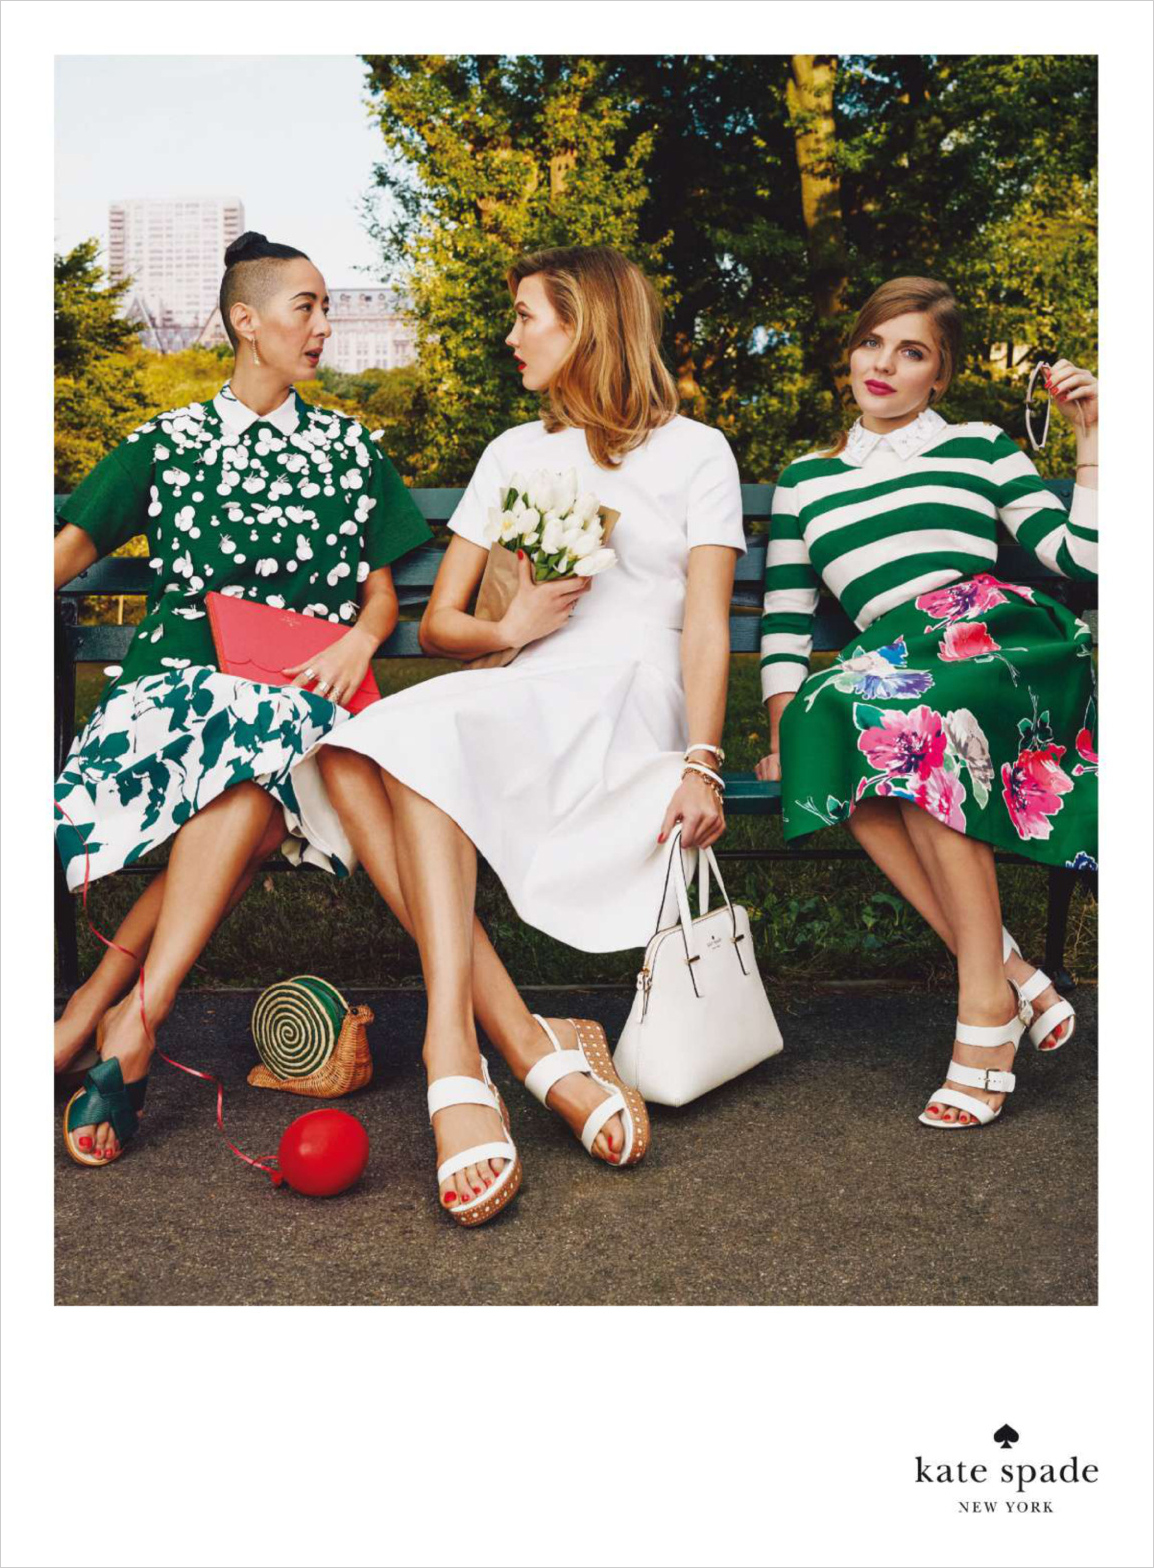 kate-spade-spring-ad campaign-2015-the-impression-01